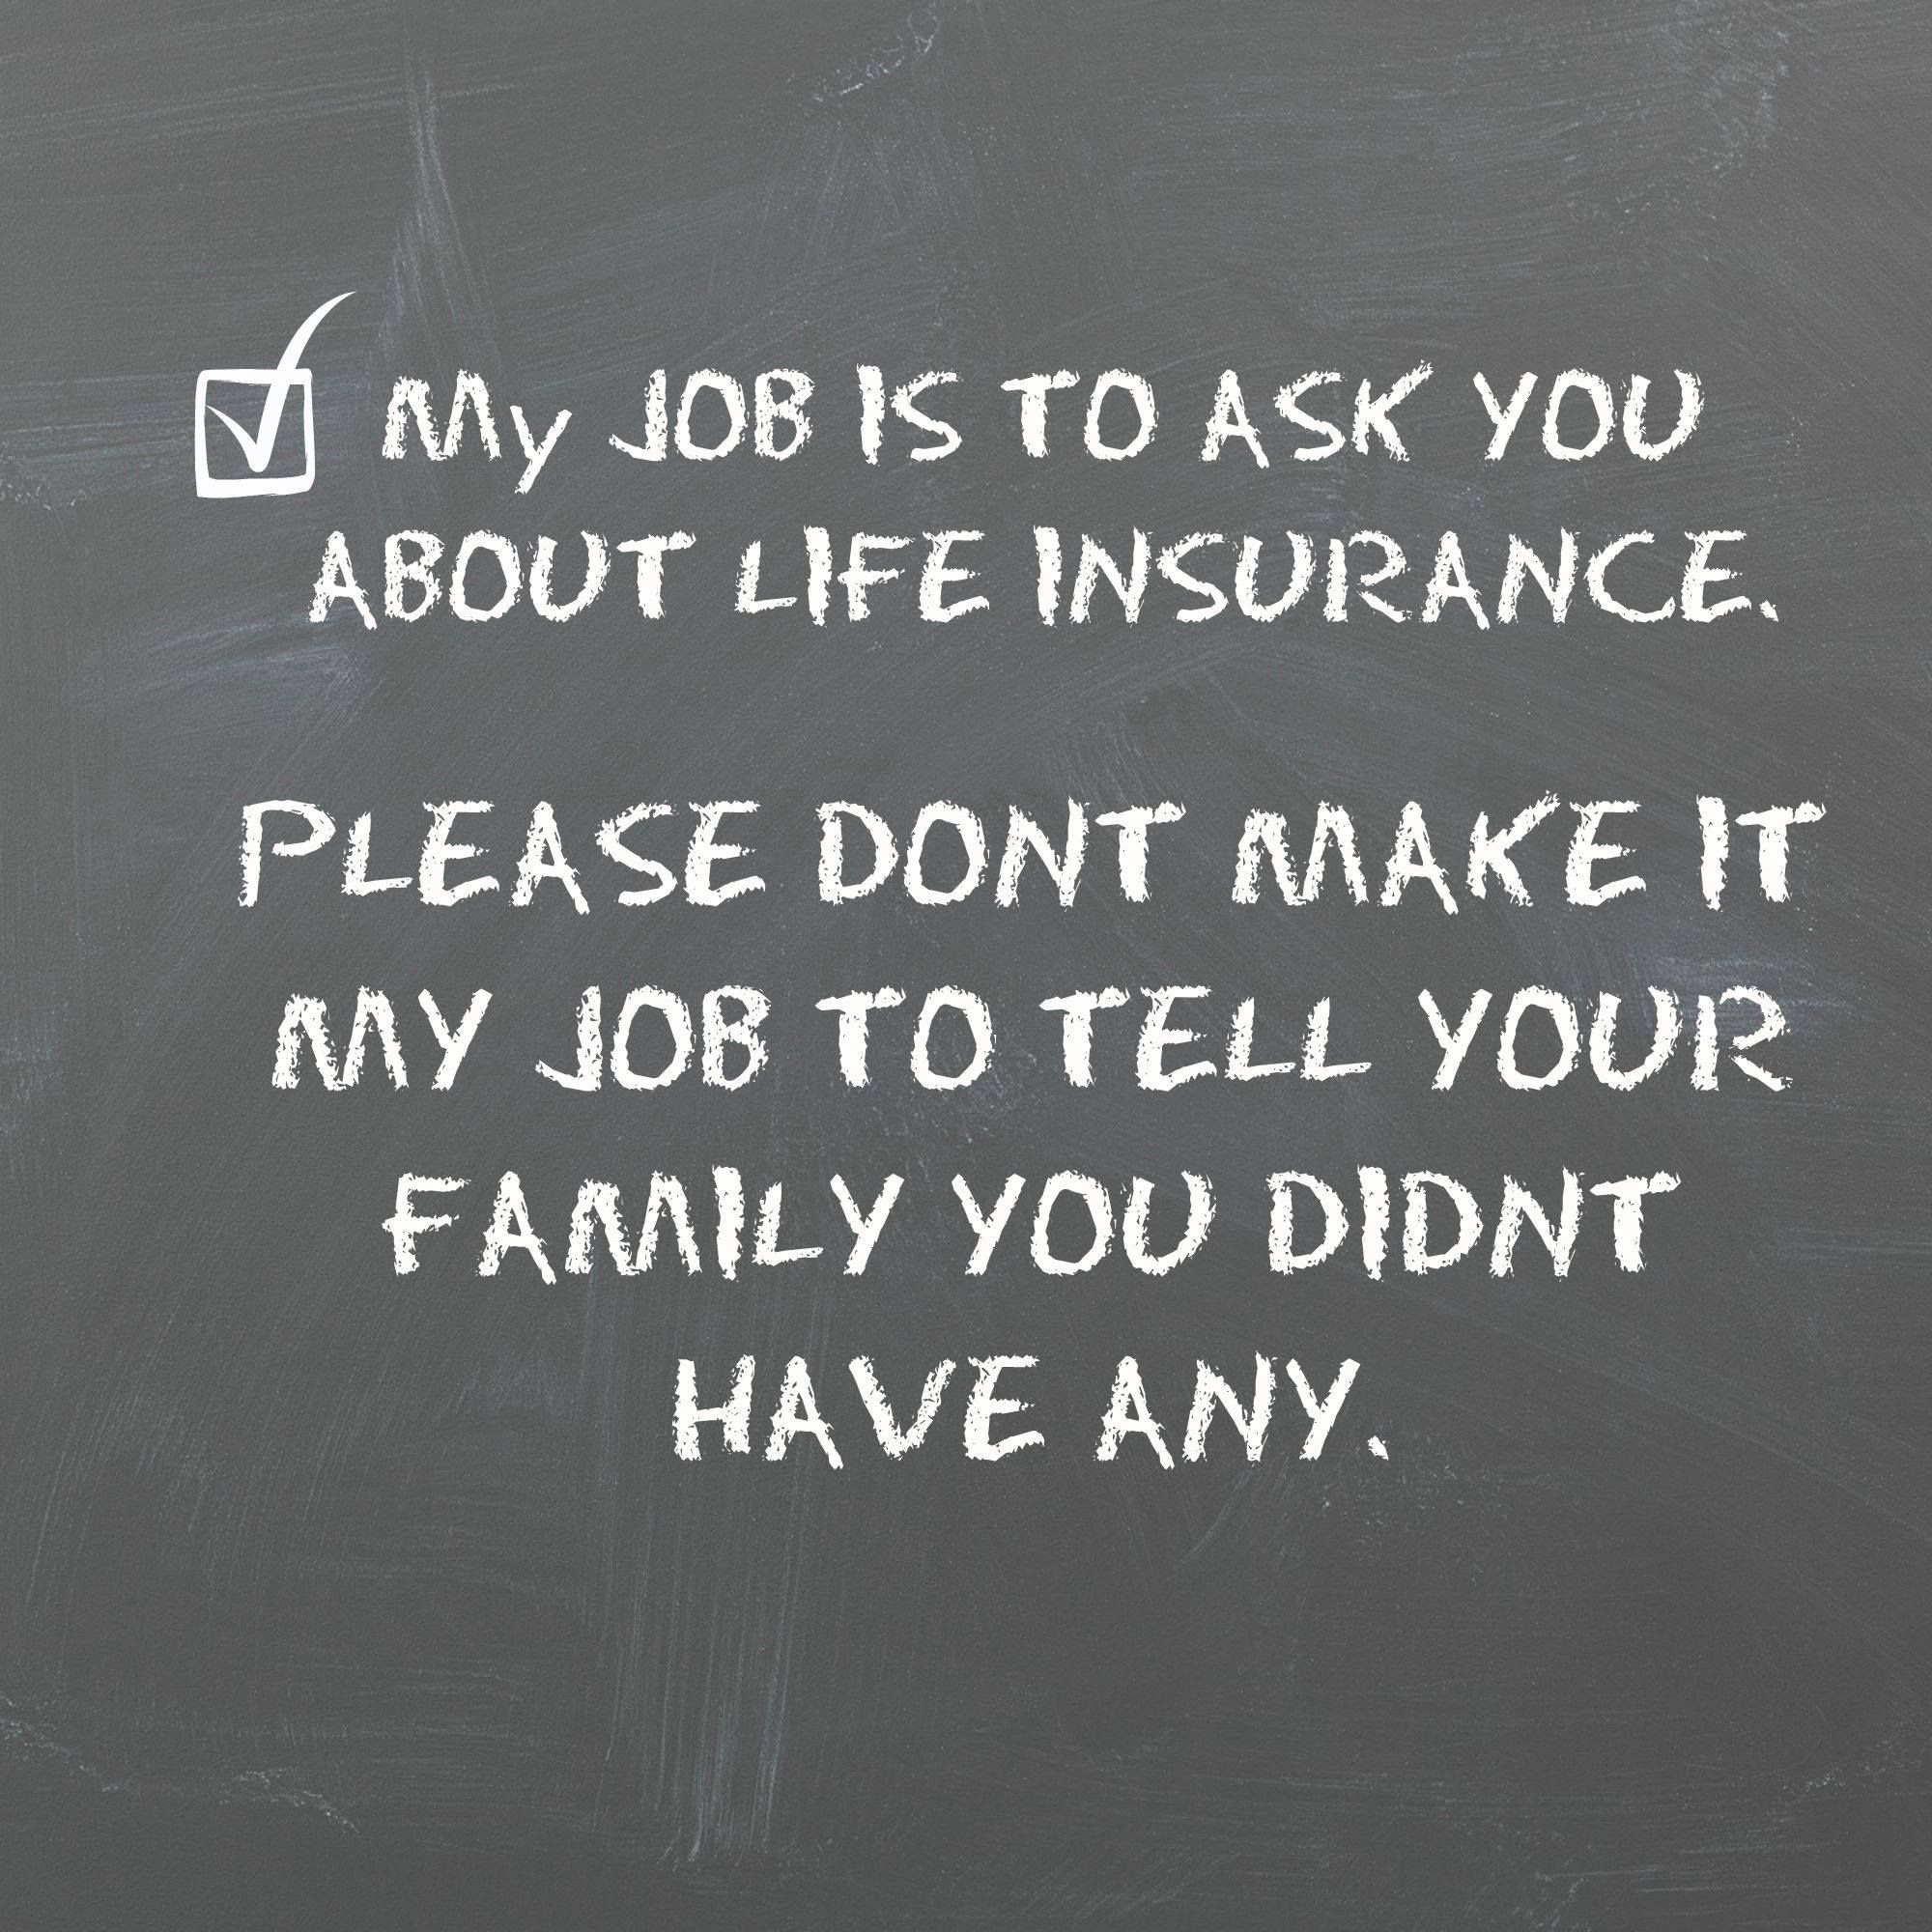 Call us for any LifeInsurance questions that you have at